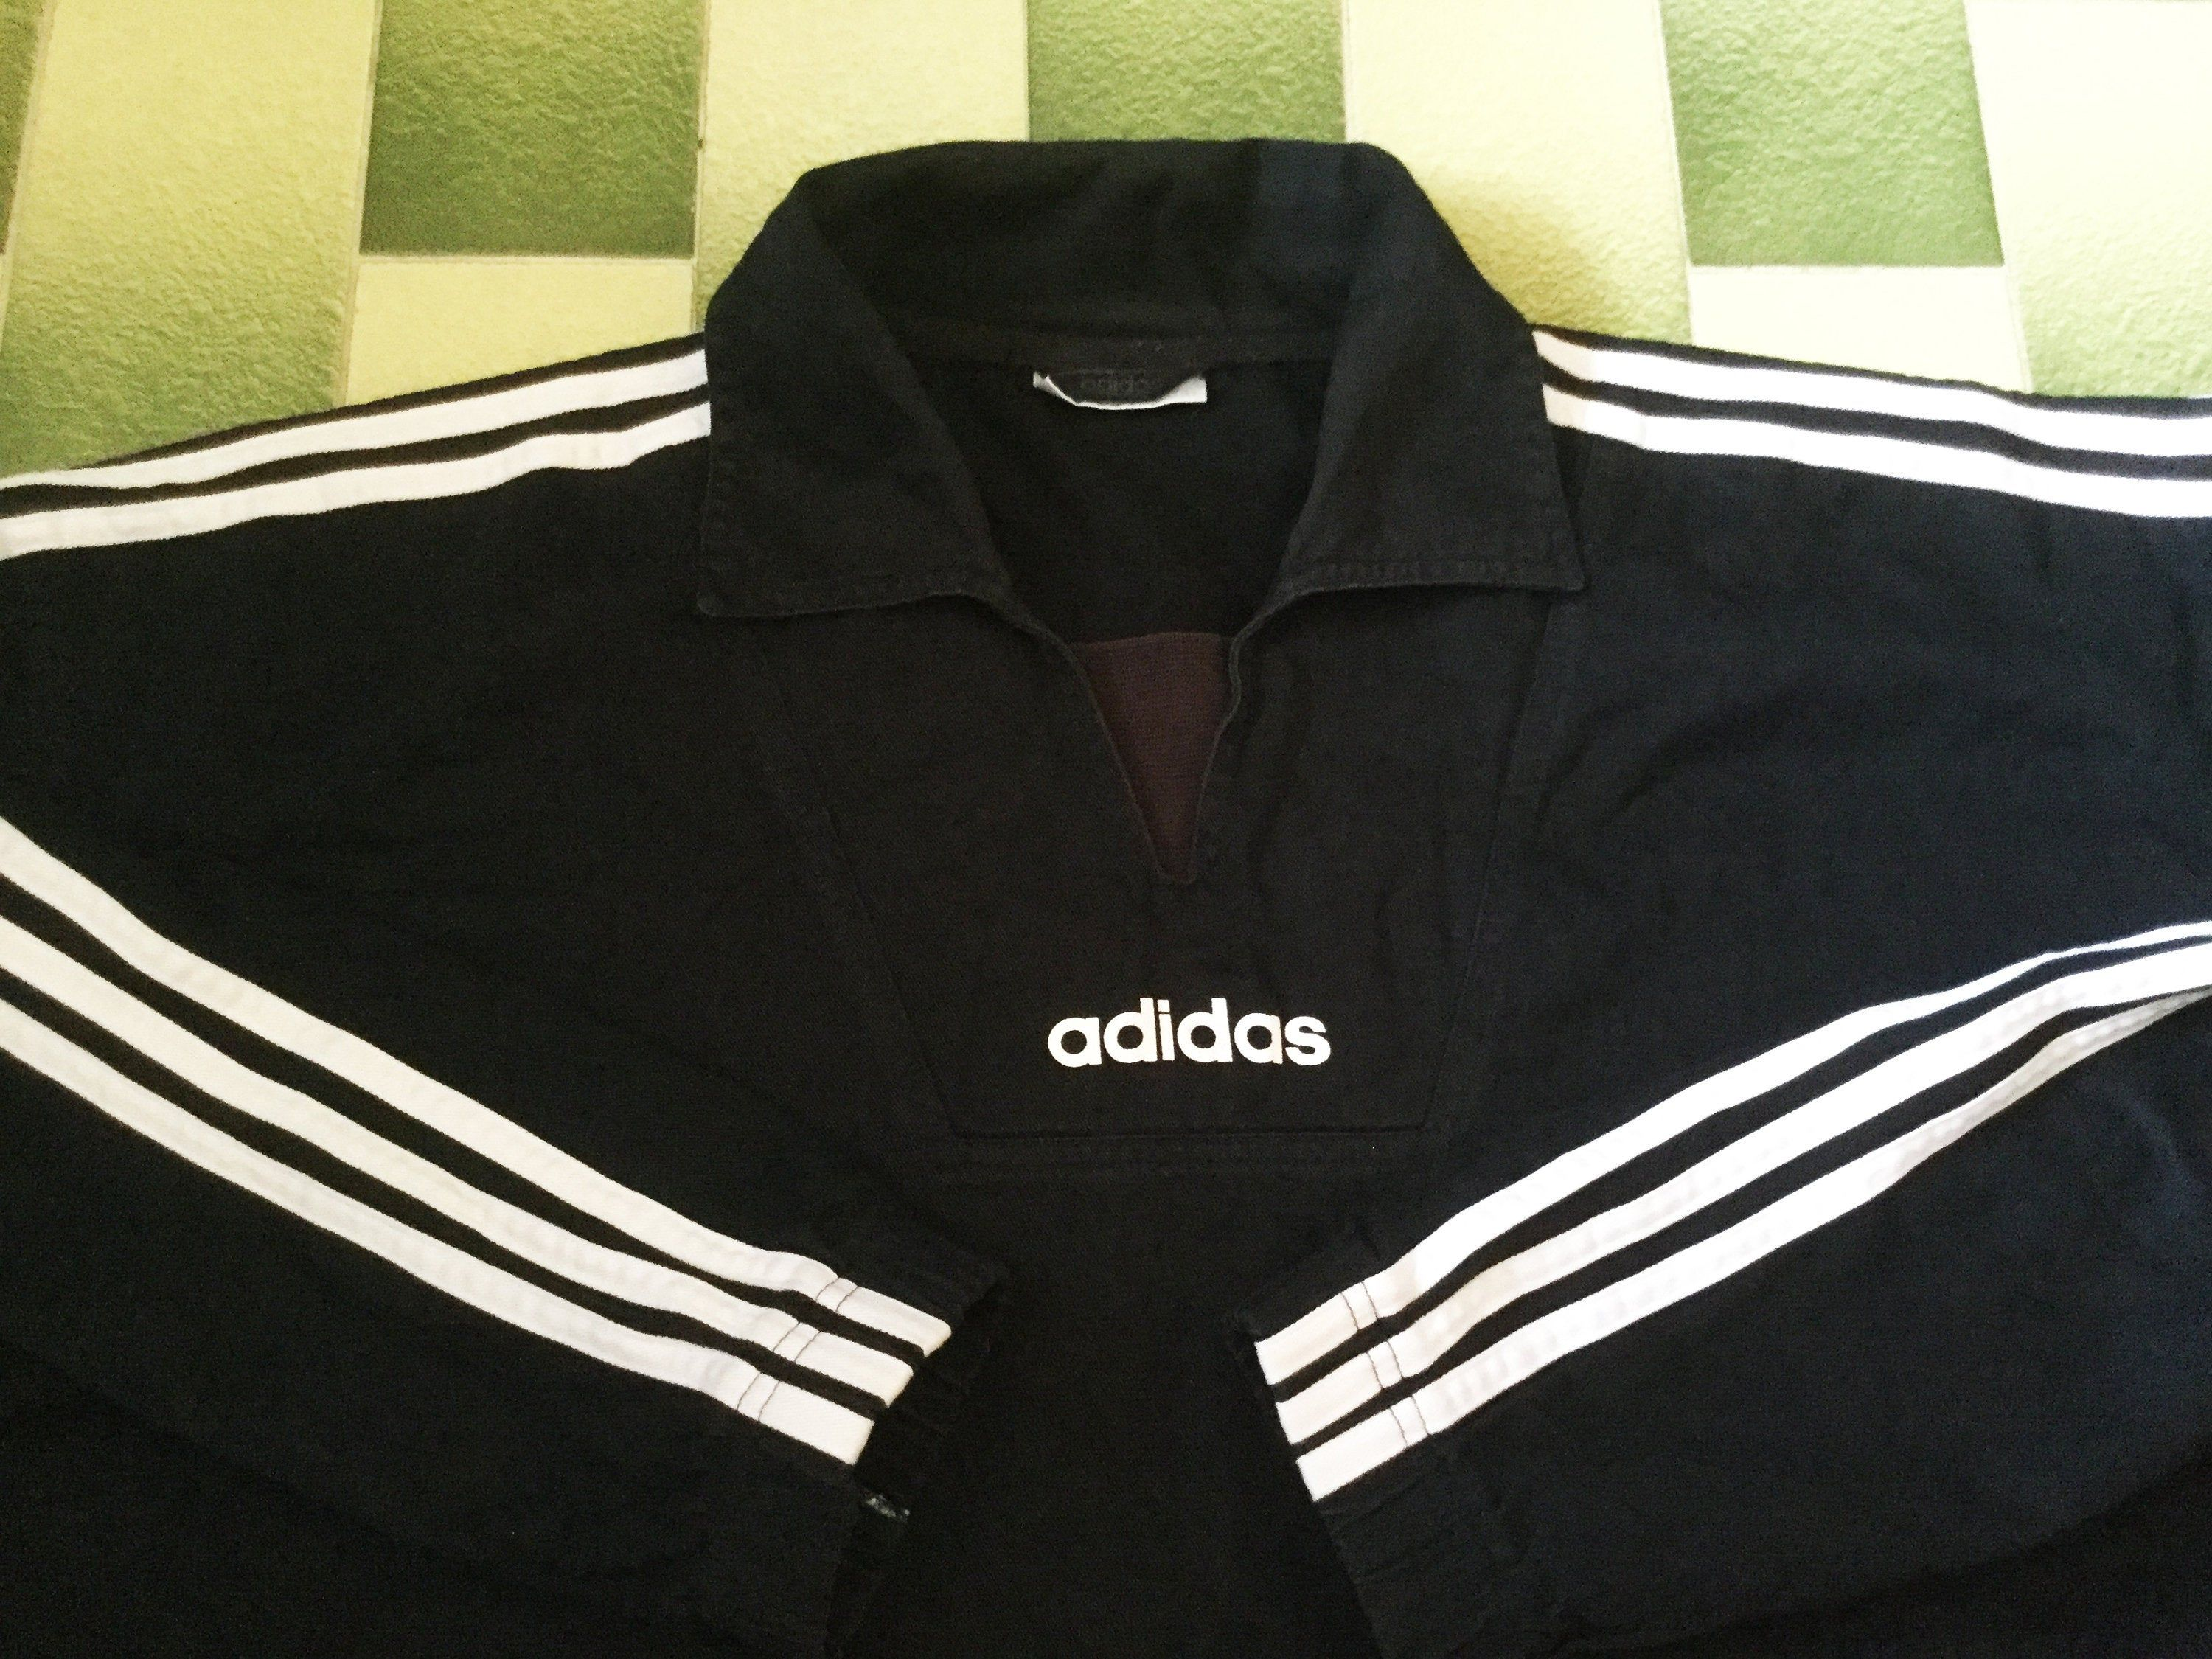 Vintage Adidas Collared V Neck Pullover With Big Adidas Etsy Vintage Adidas Pullover Car Tee Shirts [ 2250 x 3000 Pixel ]